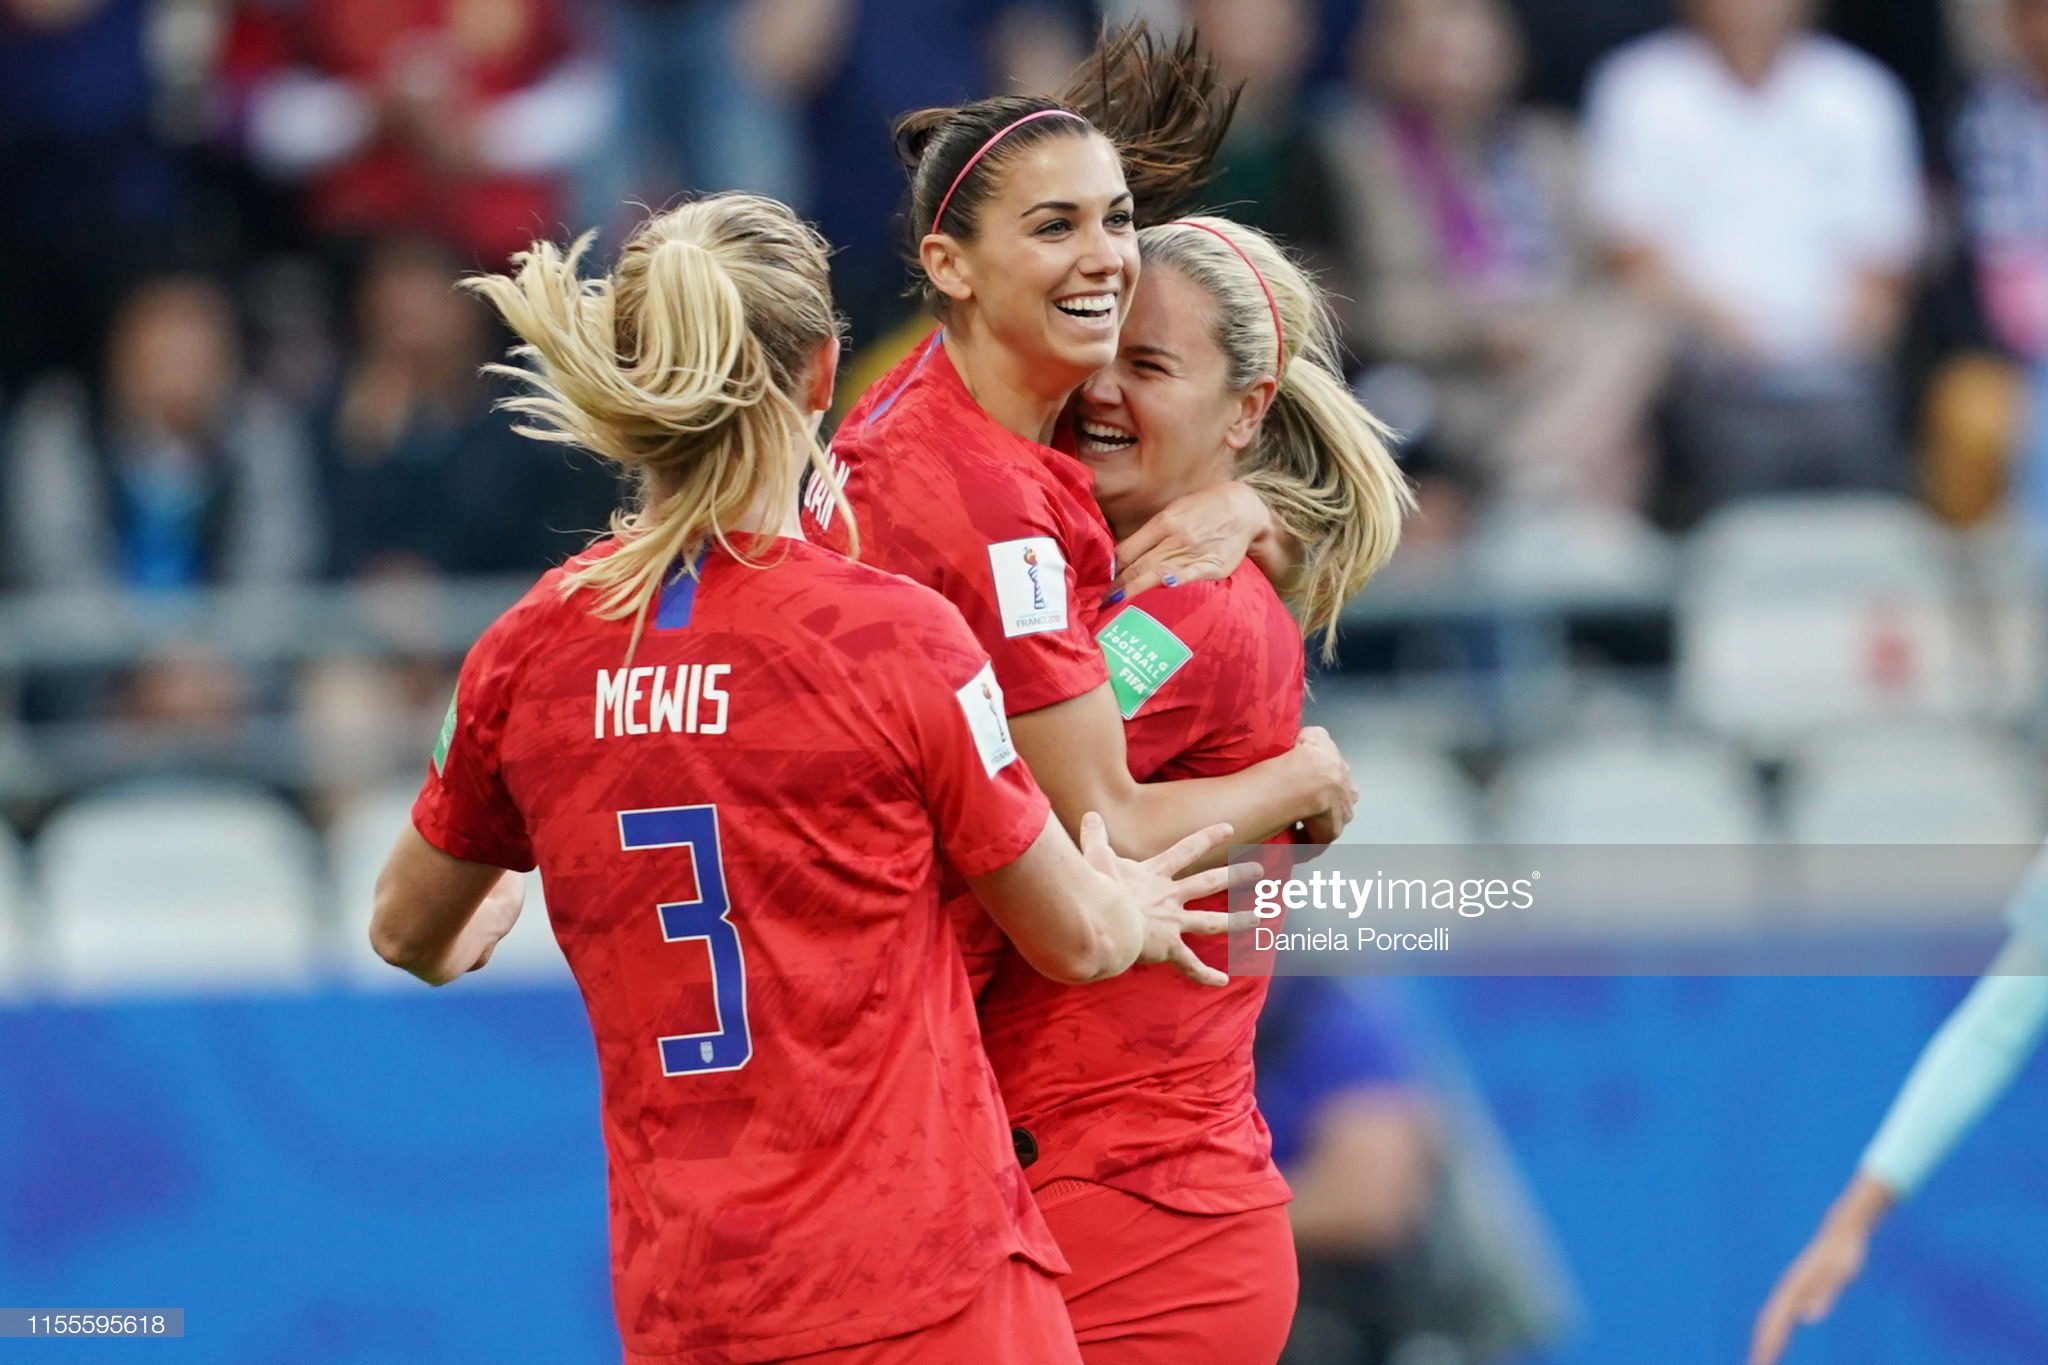 USA v Thailand: Group F - 2019 FIFA Women's World Cup France  REIMS, FRANCE - JUNE 11: Alex Morgan of the USA celebrates scoring her first goal, which gets called of because of offside during the 2019 FIFA Women's World Cup France group F match between USA and Thailand at Stade Auguste Delaune on June 11, 2019 in Reims, France. (Photo by Daniela Porcelli/Getty Images)